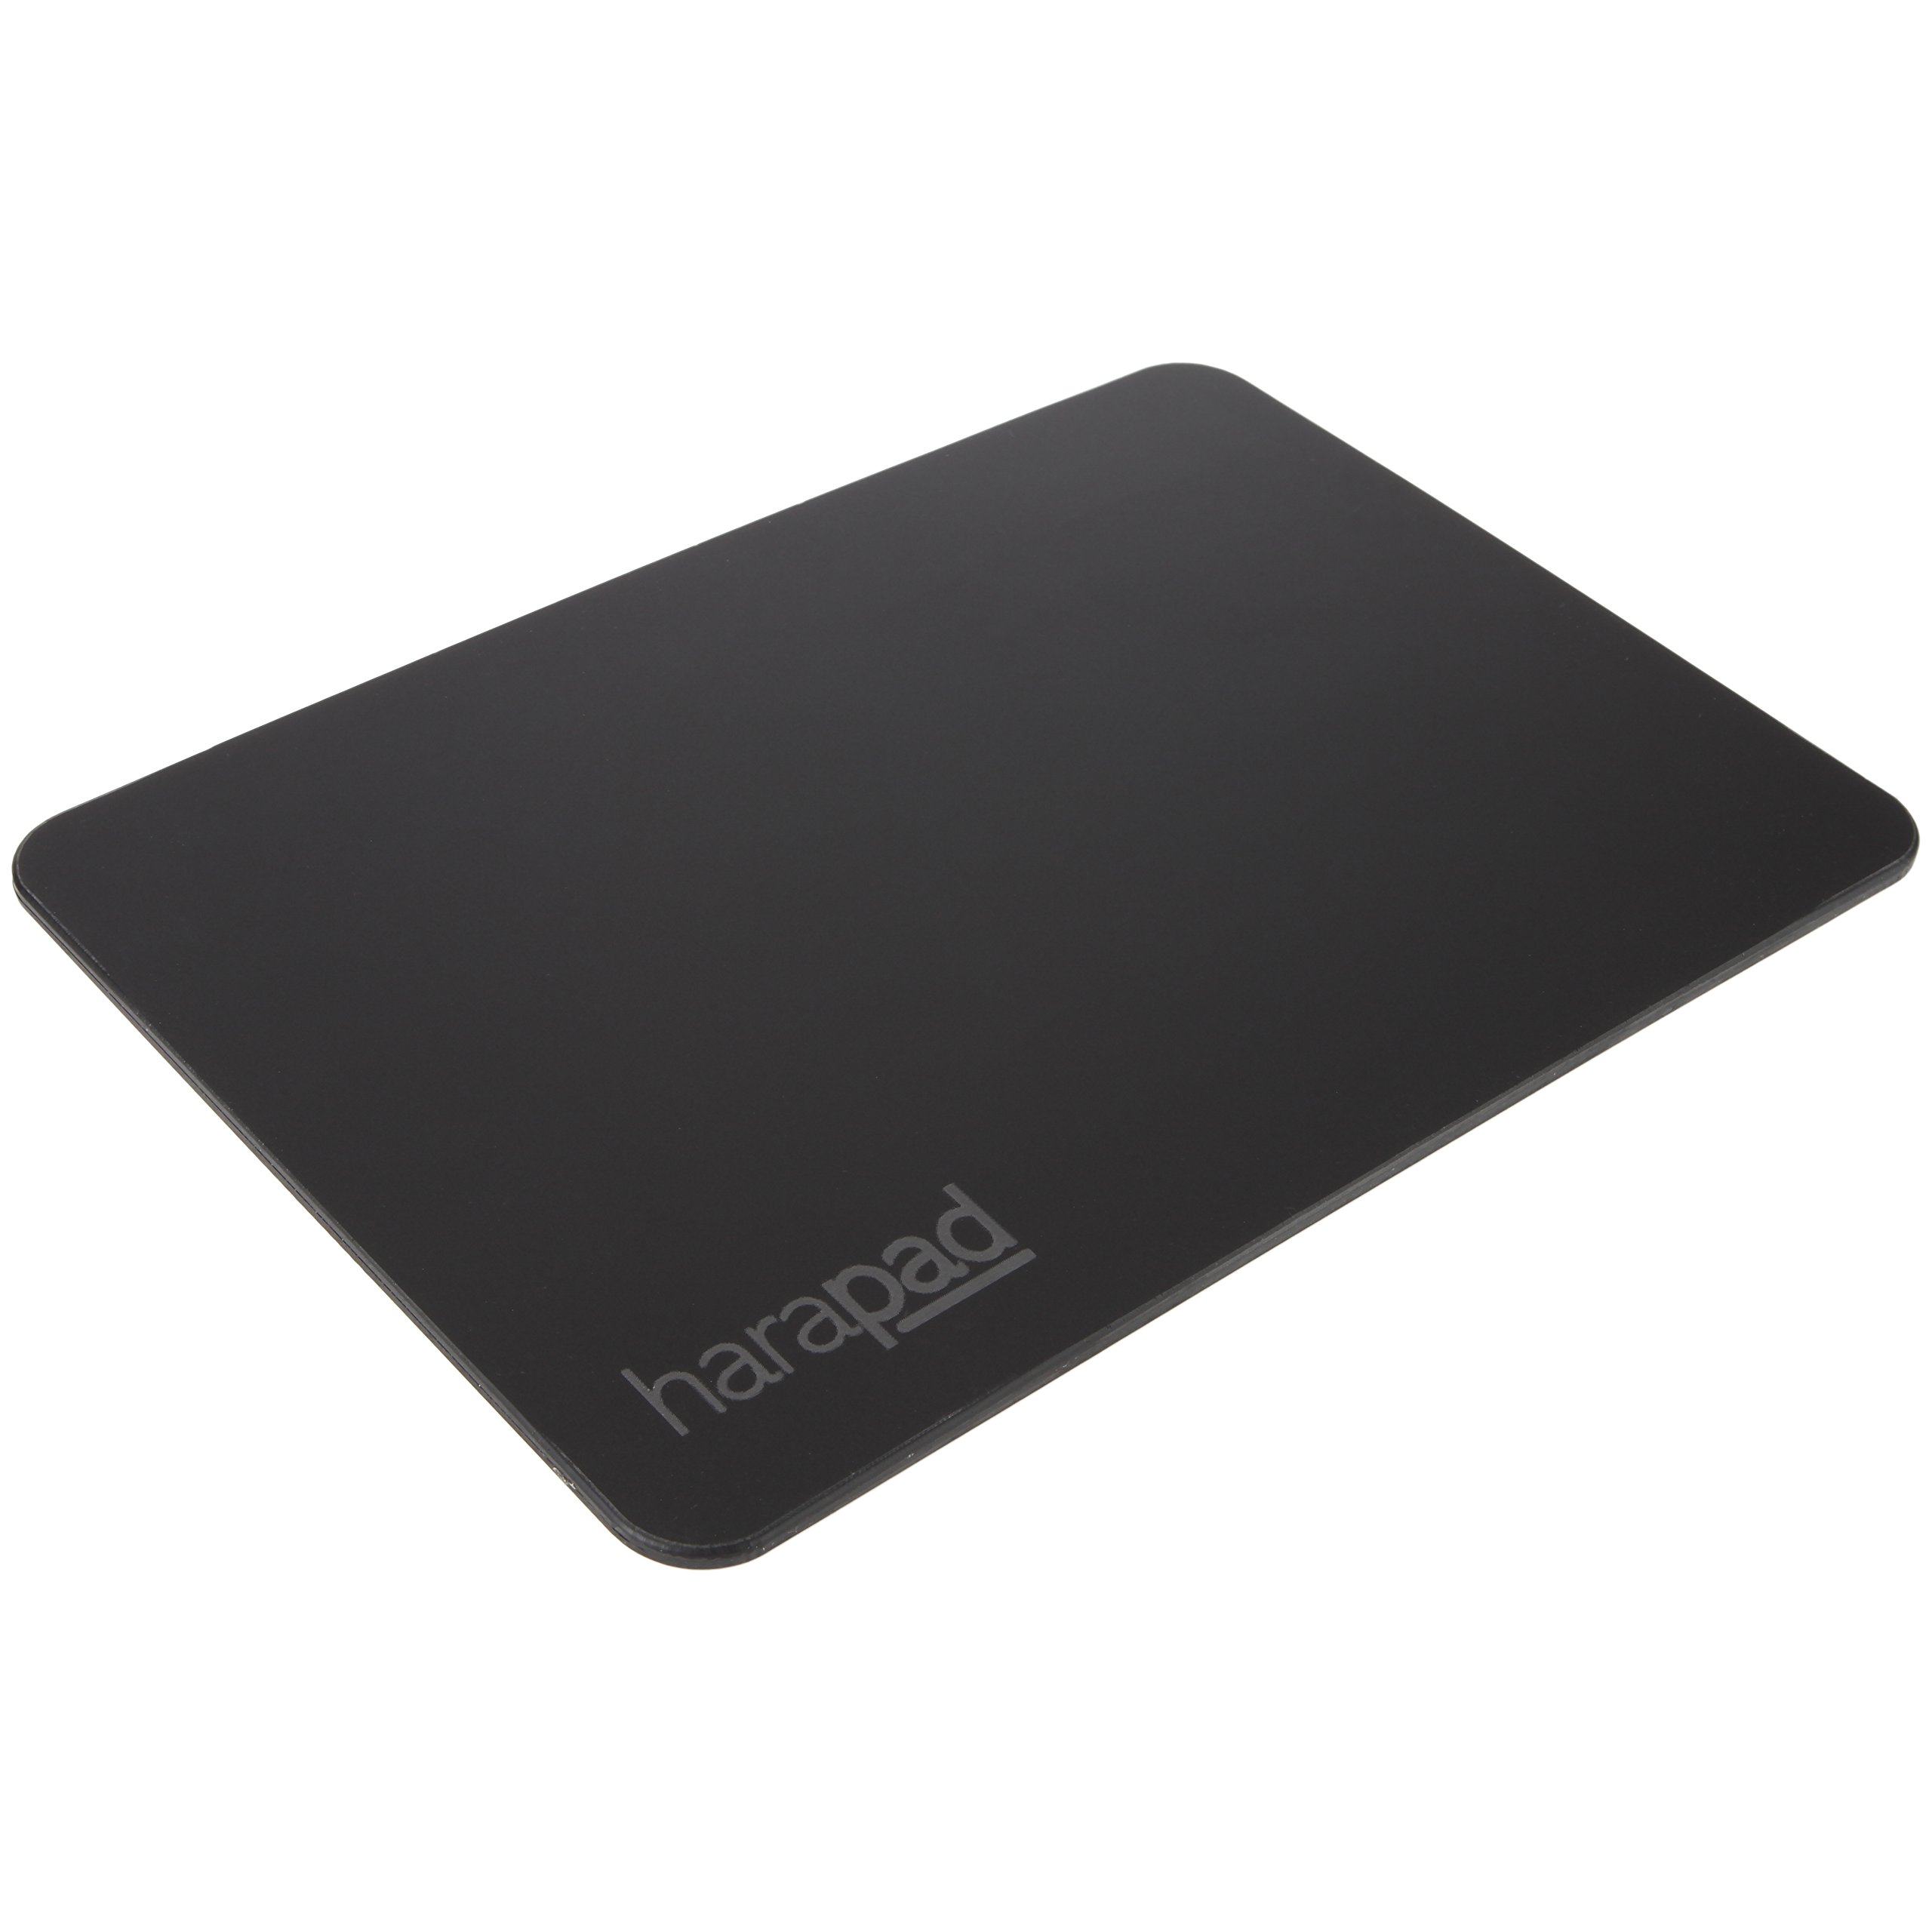 "Laptop EMF Pad Providing EMF and Radiation Protection. Black For 15"" Laptops"